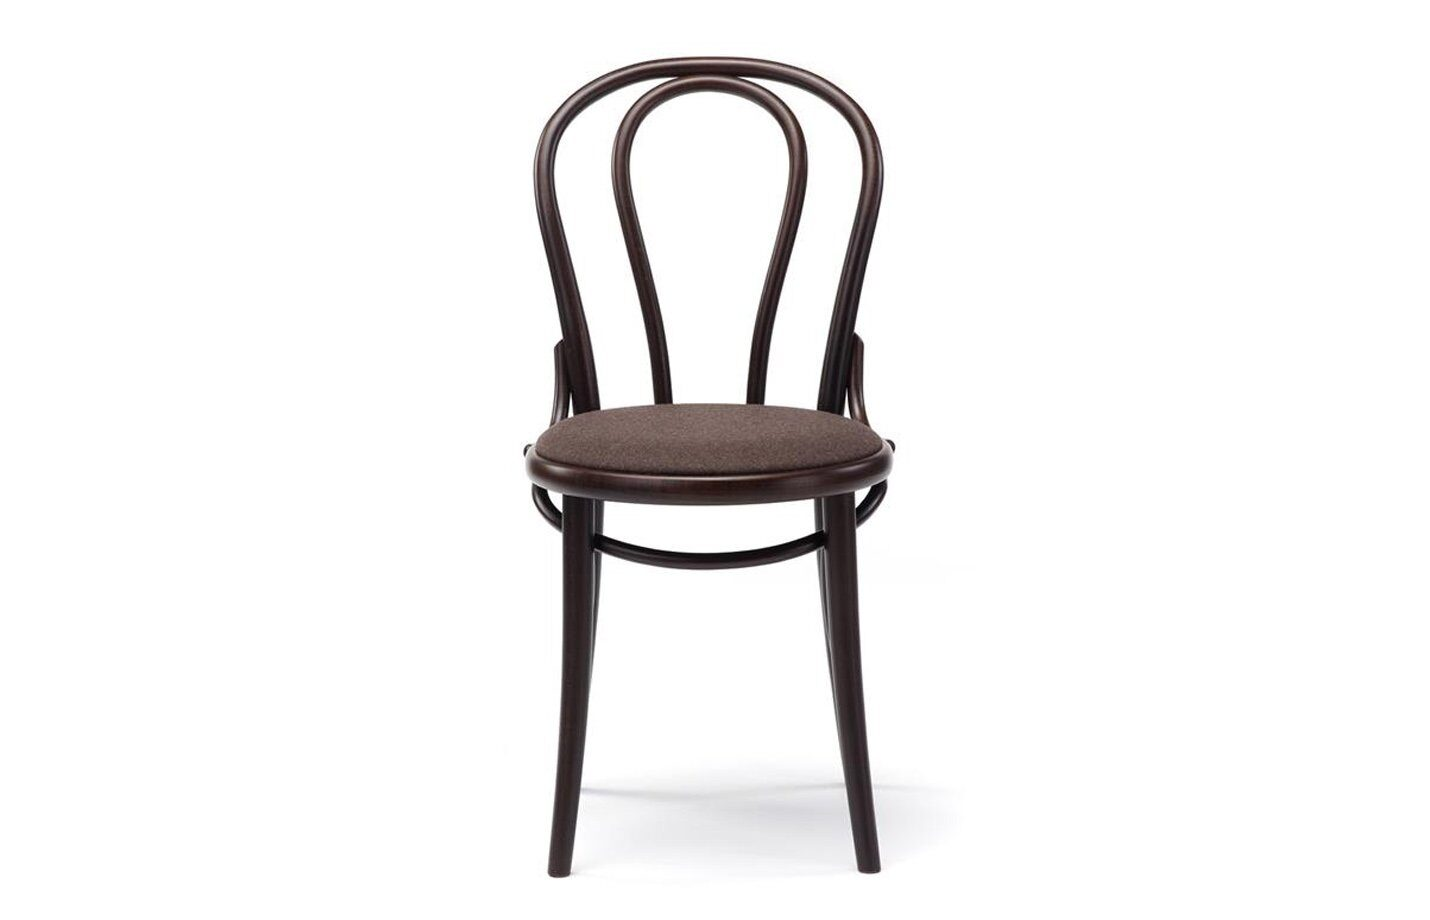 18-Dining-Chair-bent-wood-Ton-Upholstered-seat-01